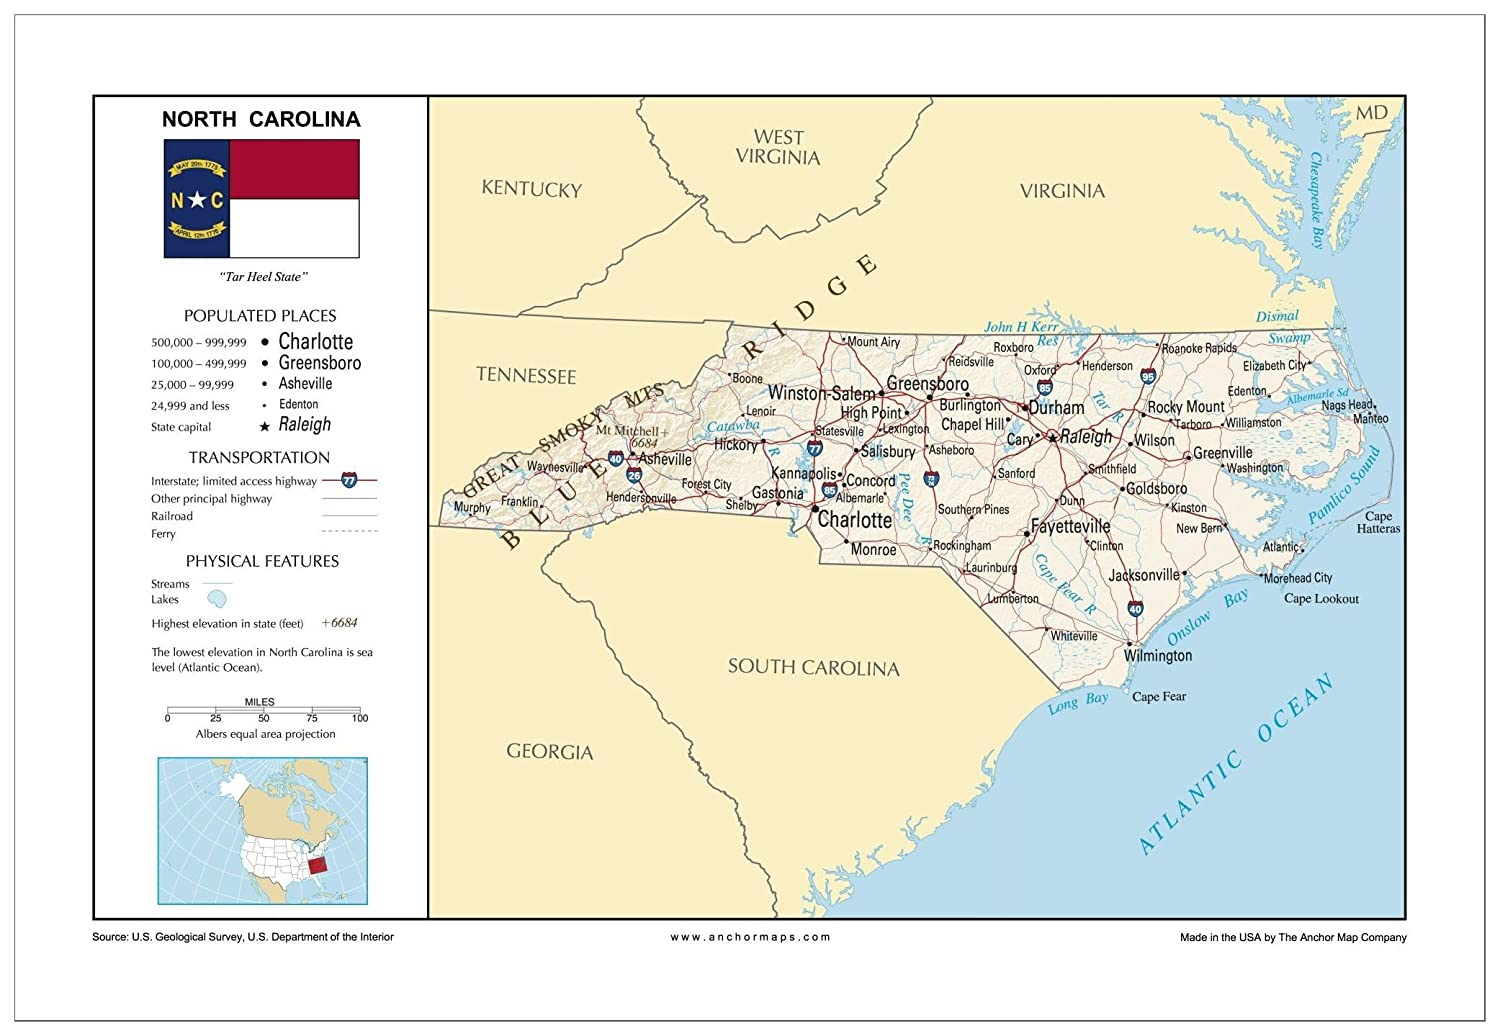 13x19 North Carolina General Reference Wall Map - Anchor Maps USA  Foundational Series - Cities, Roads, Physical Features, and Topography  [ROLLED]